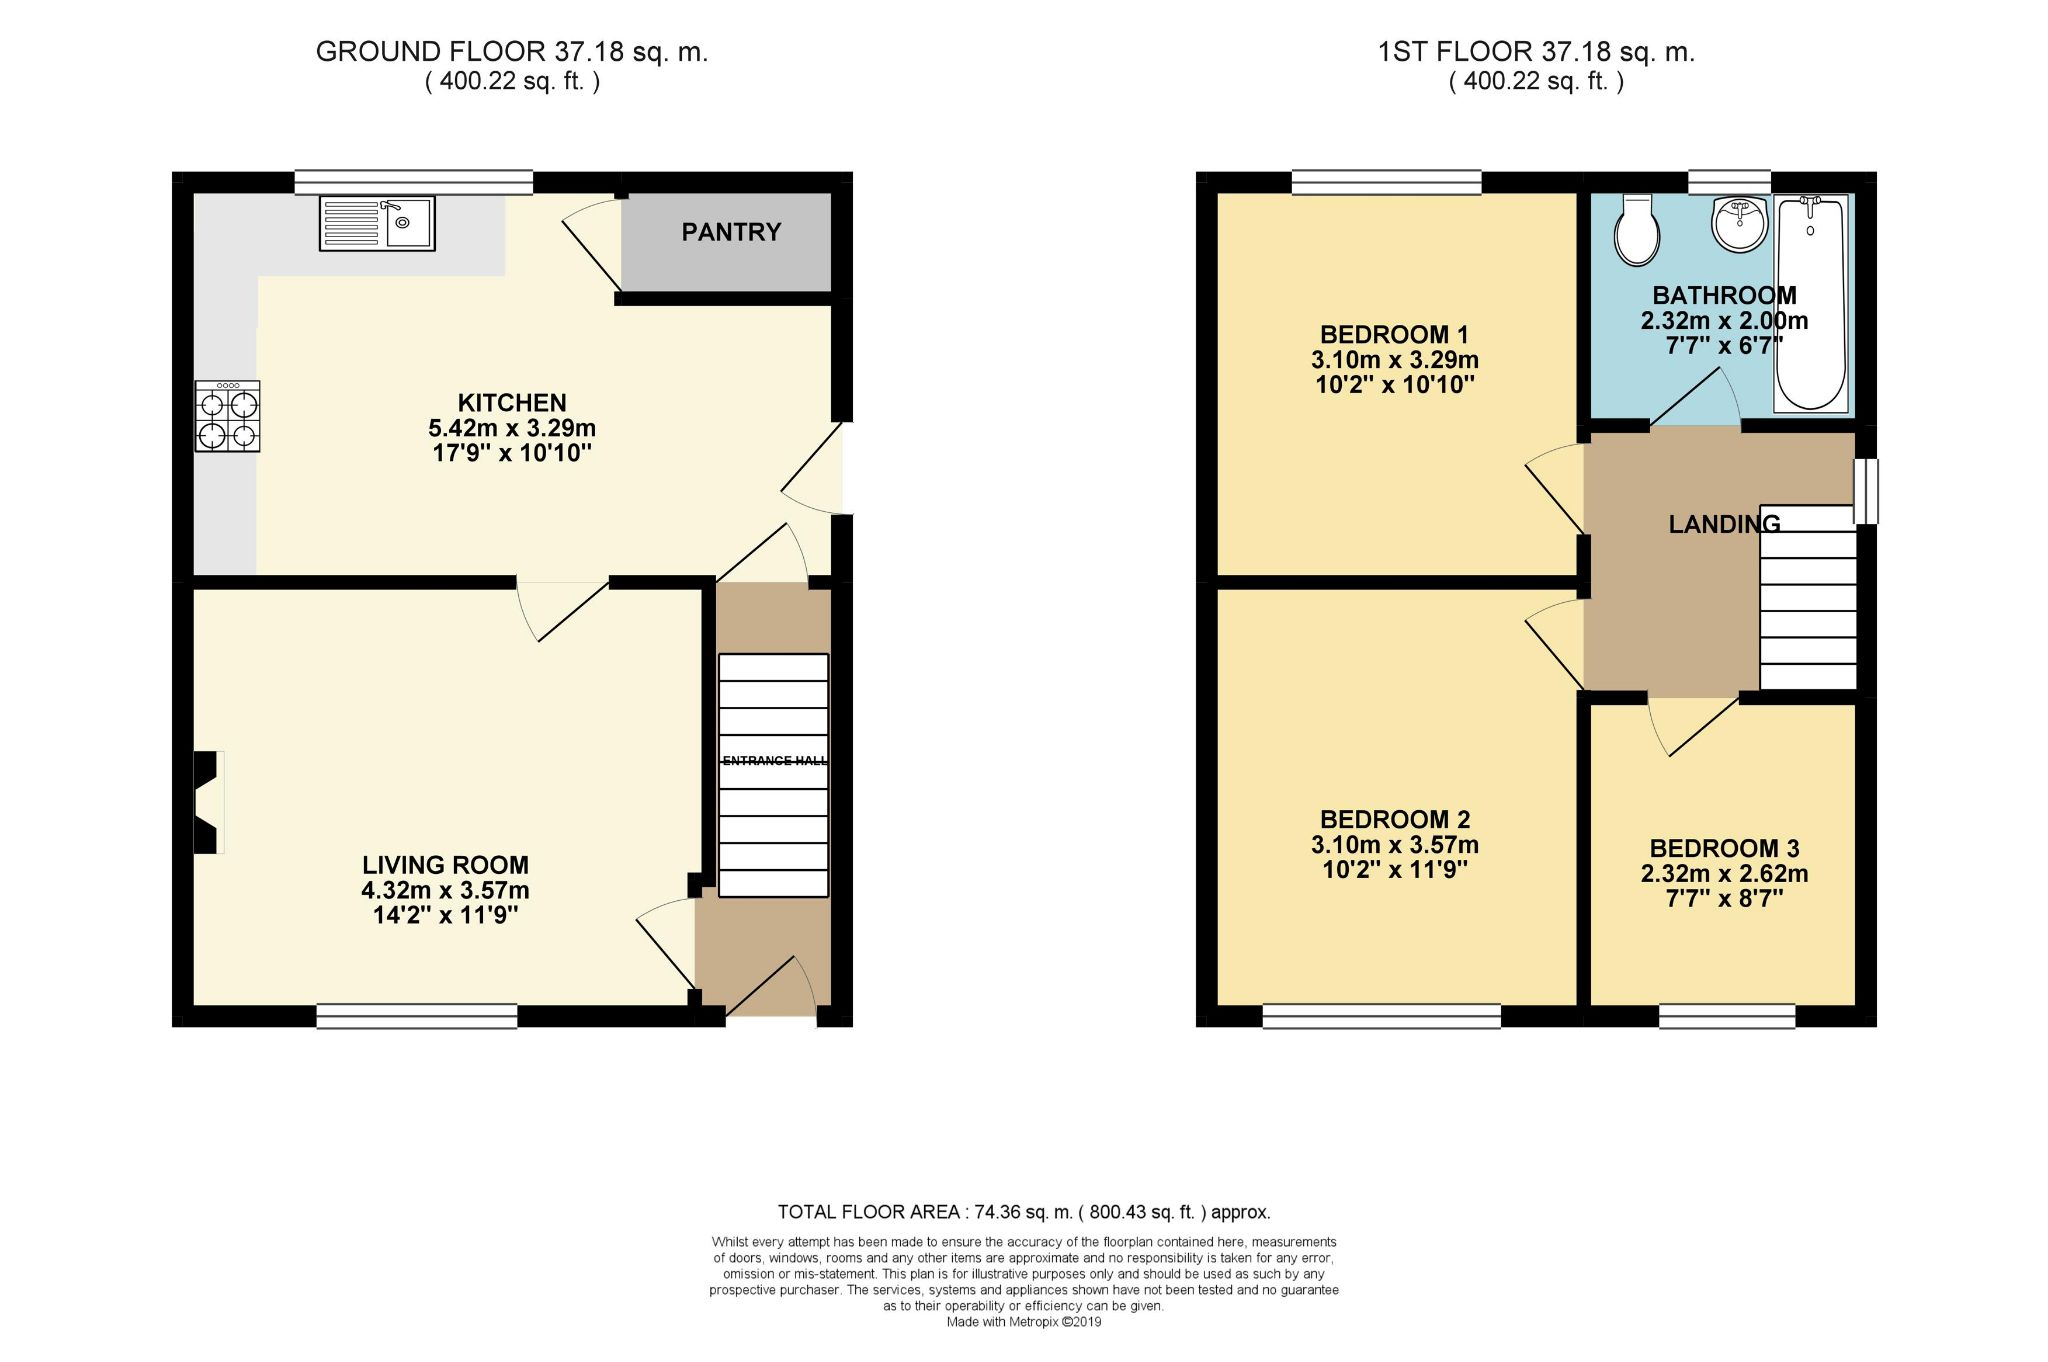 3 bedroom semi-detached house SSTC in Brighouse - Floorplan 1